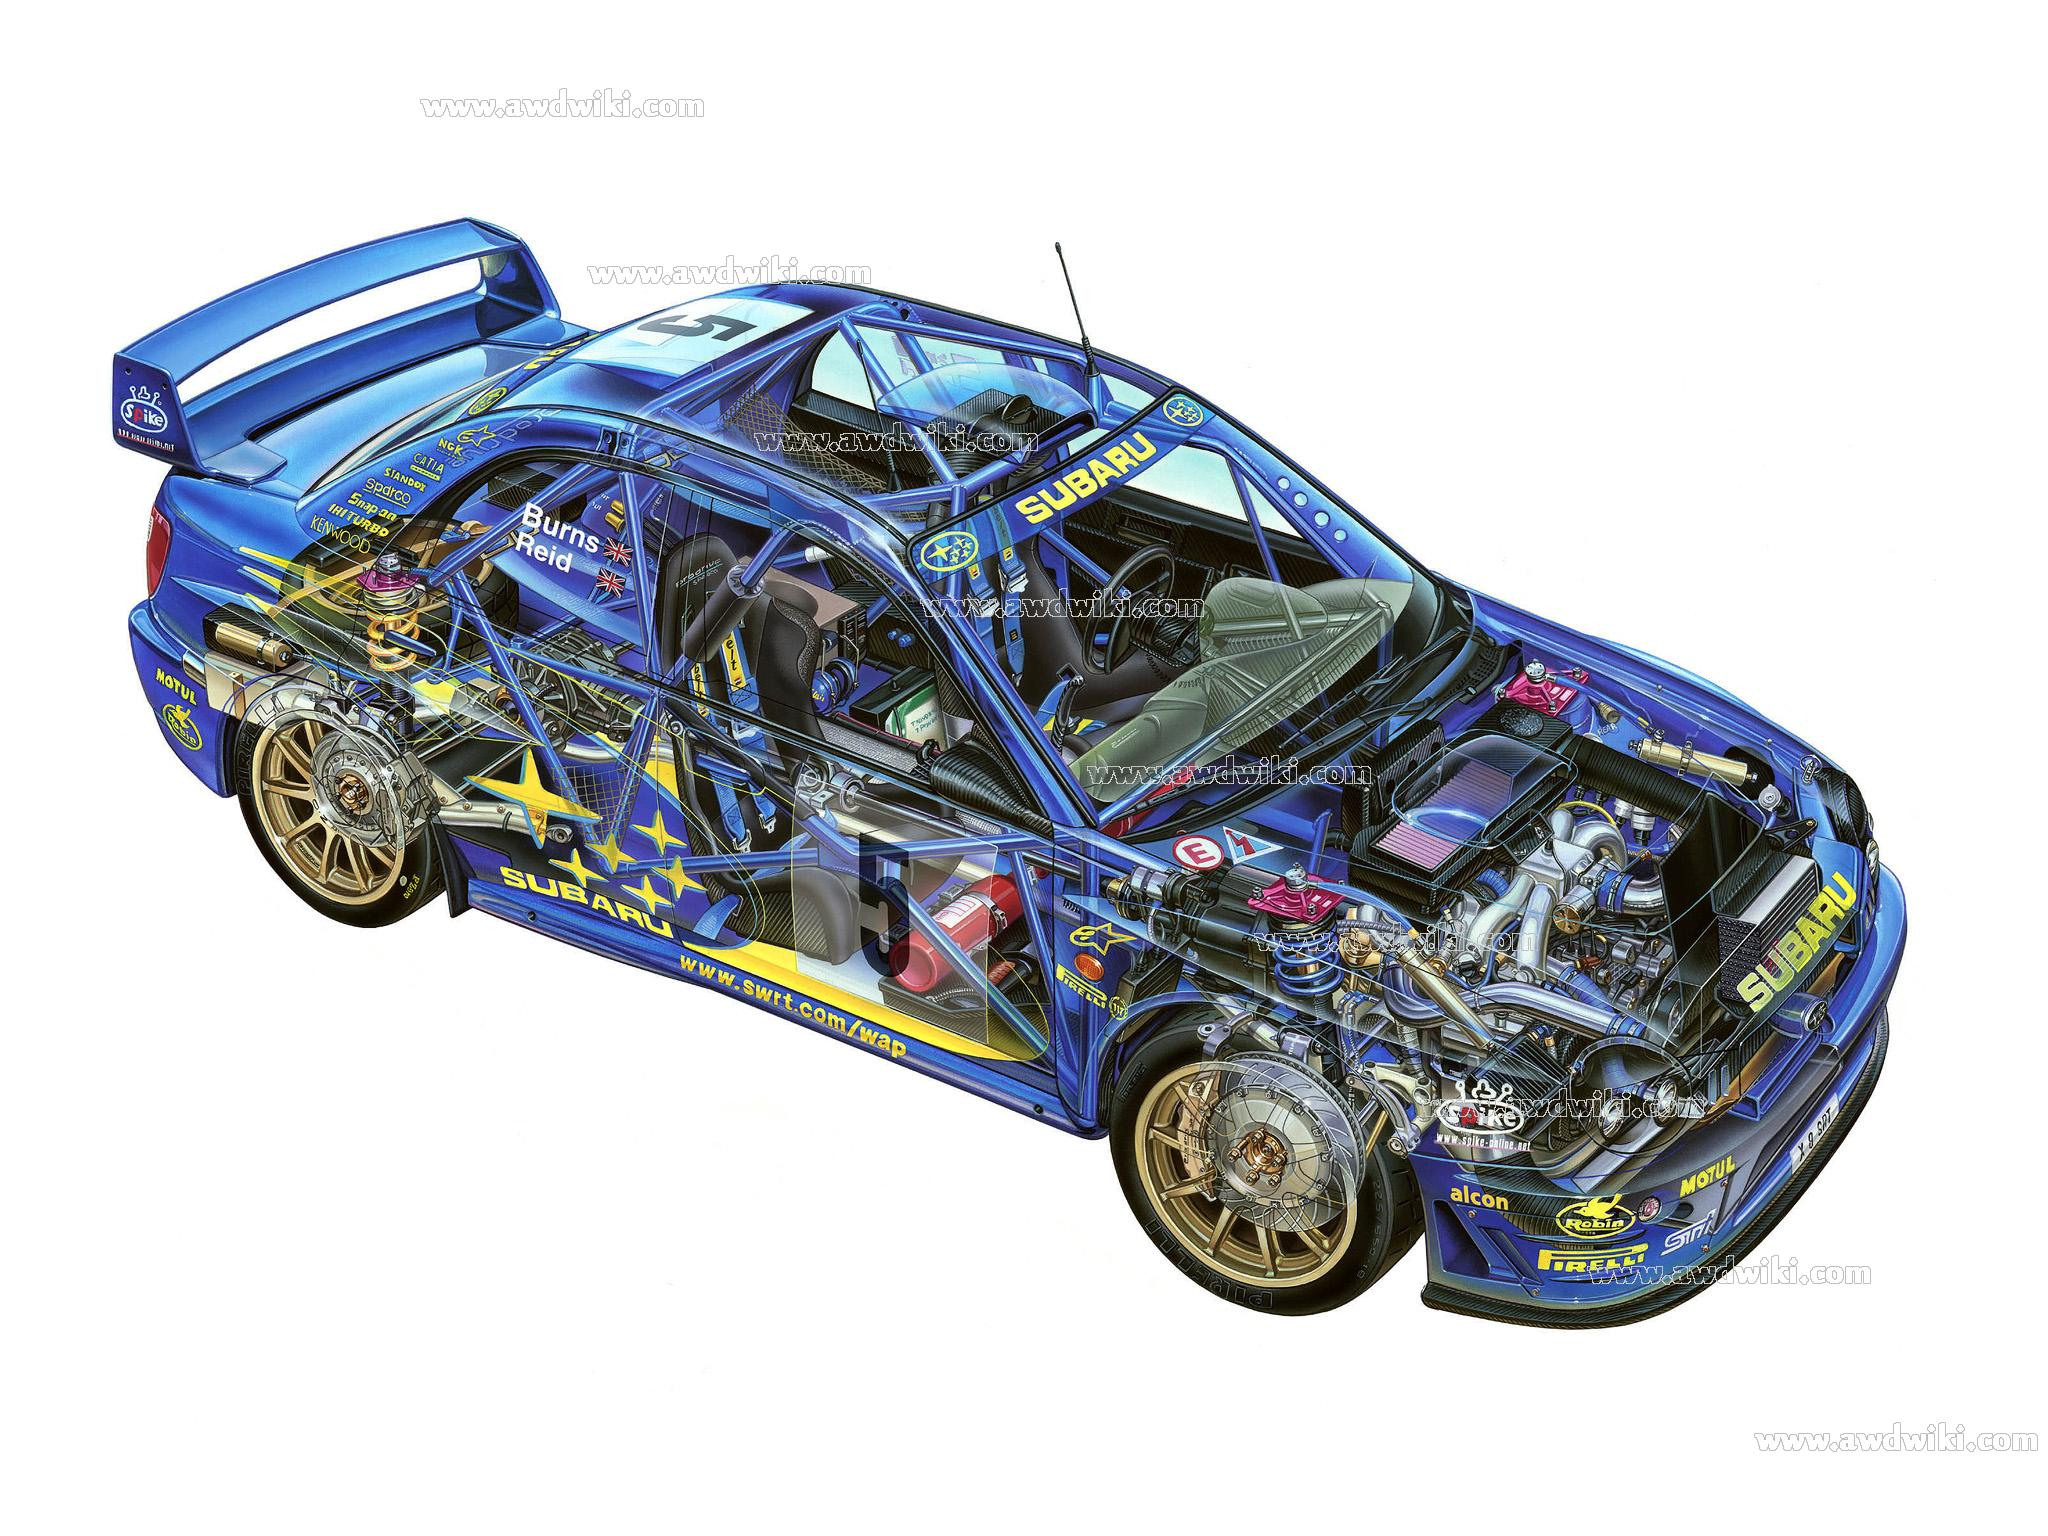 Subaru All Wheel Drive Explained Awd Cars 4x4 Vehicles 4wd Front Axle Diagram Impreza Wrc Second Generation